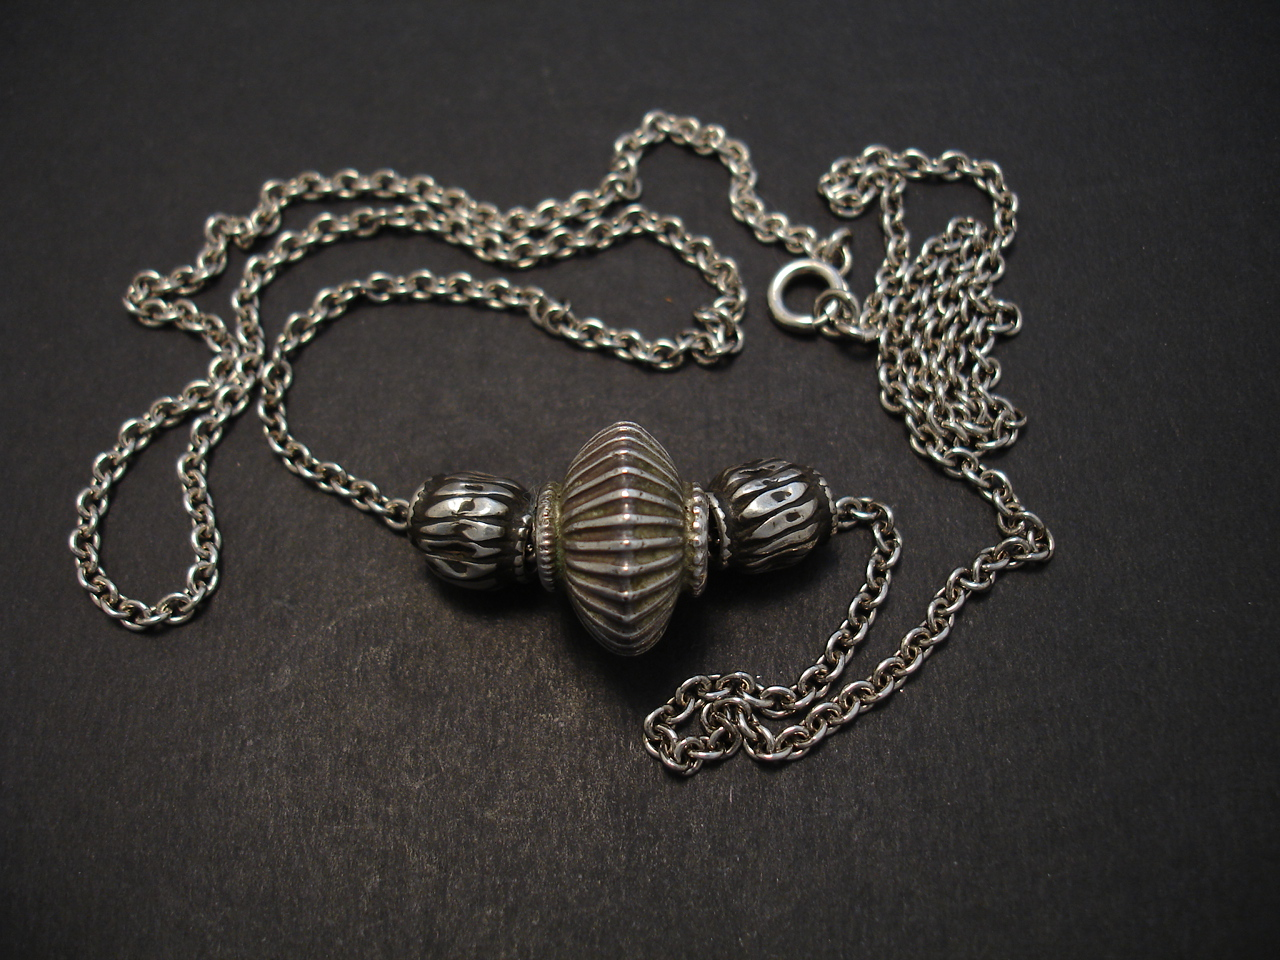 necklace coins handcrafted oak silver the totally collection and recycled pendant from hedgehog shilling old sterling